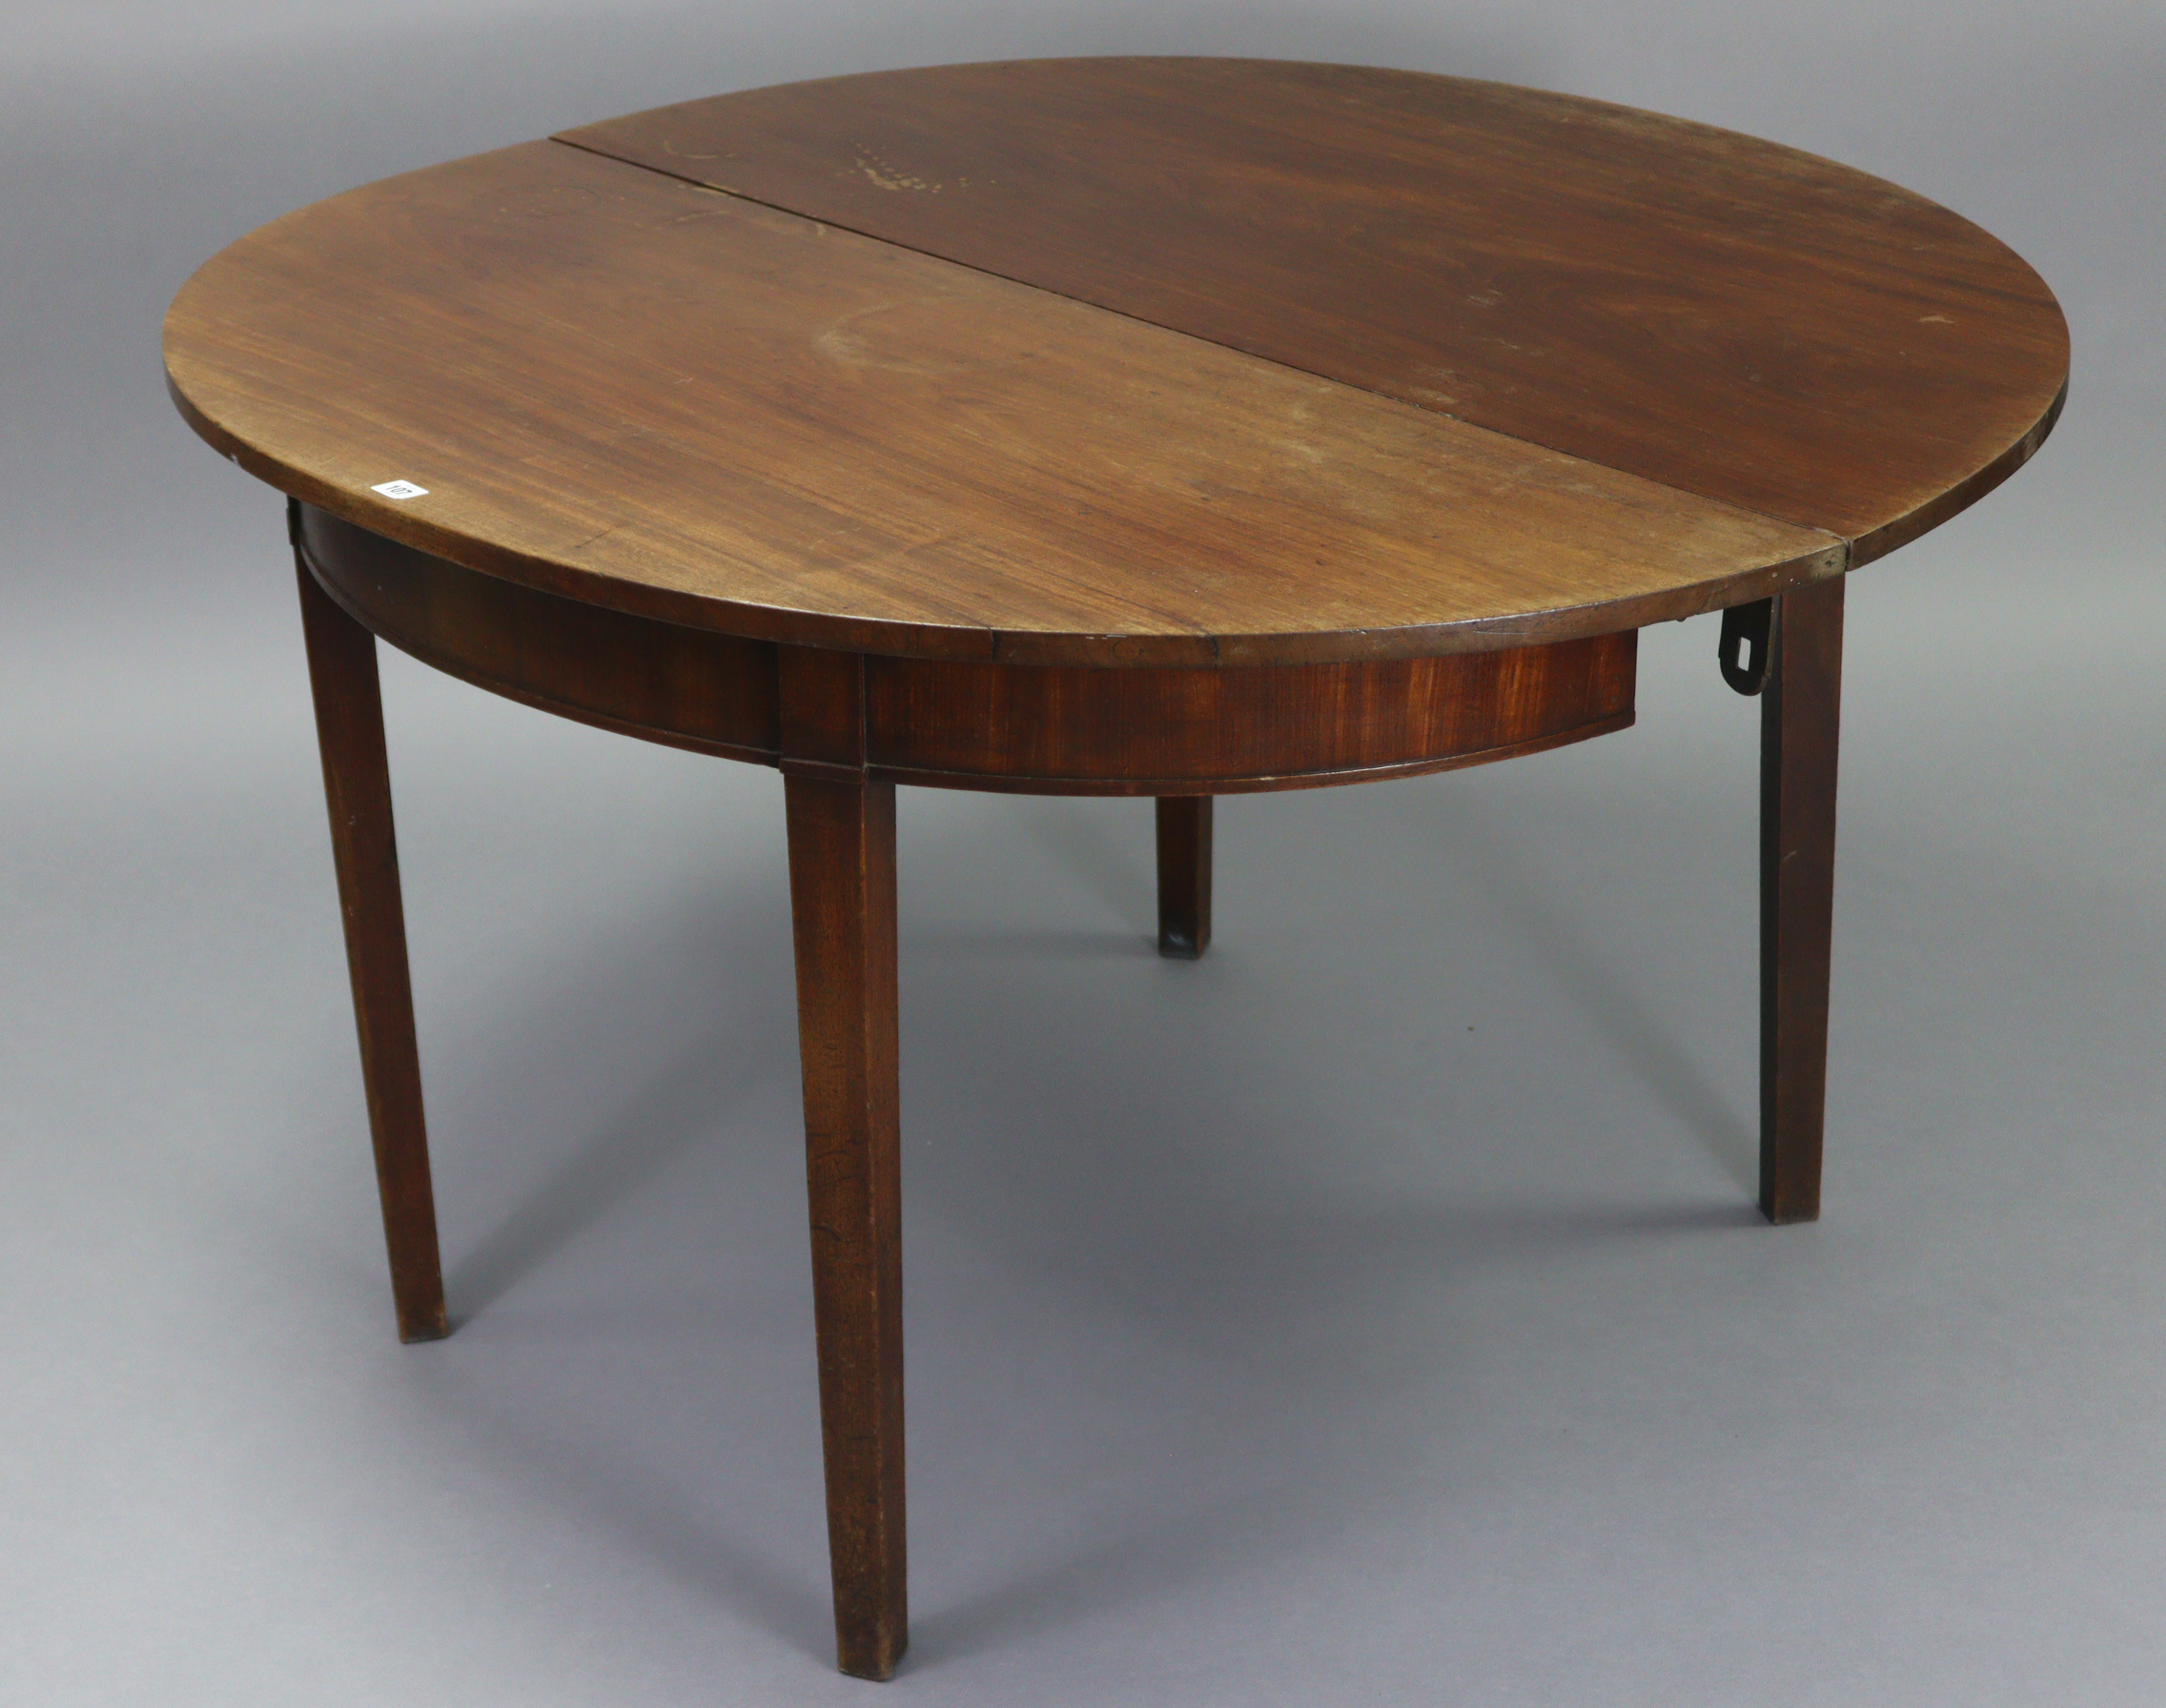 An early 20th century mahogany circular single-drop leaf dining table on four square tapered legs, - Image 3 of 6